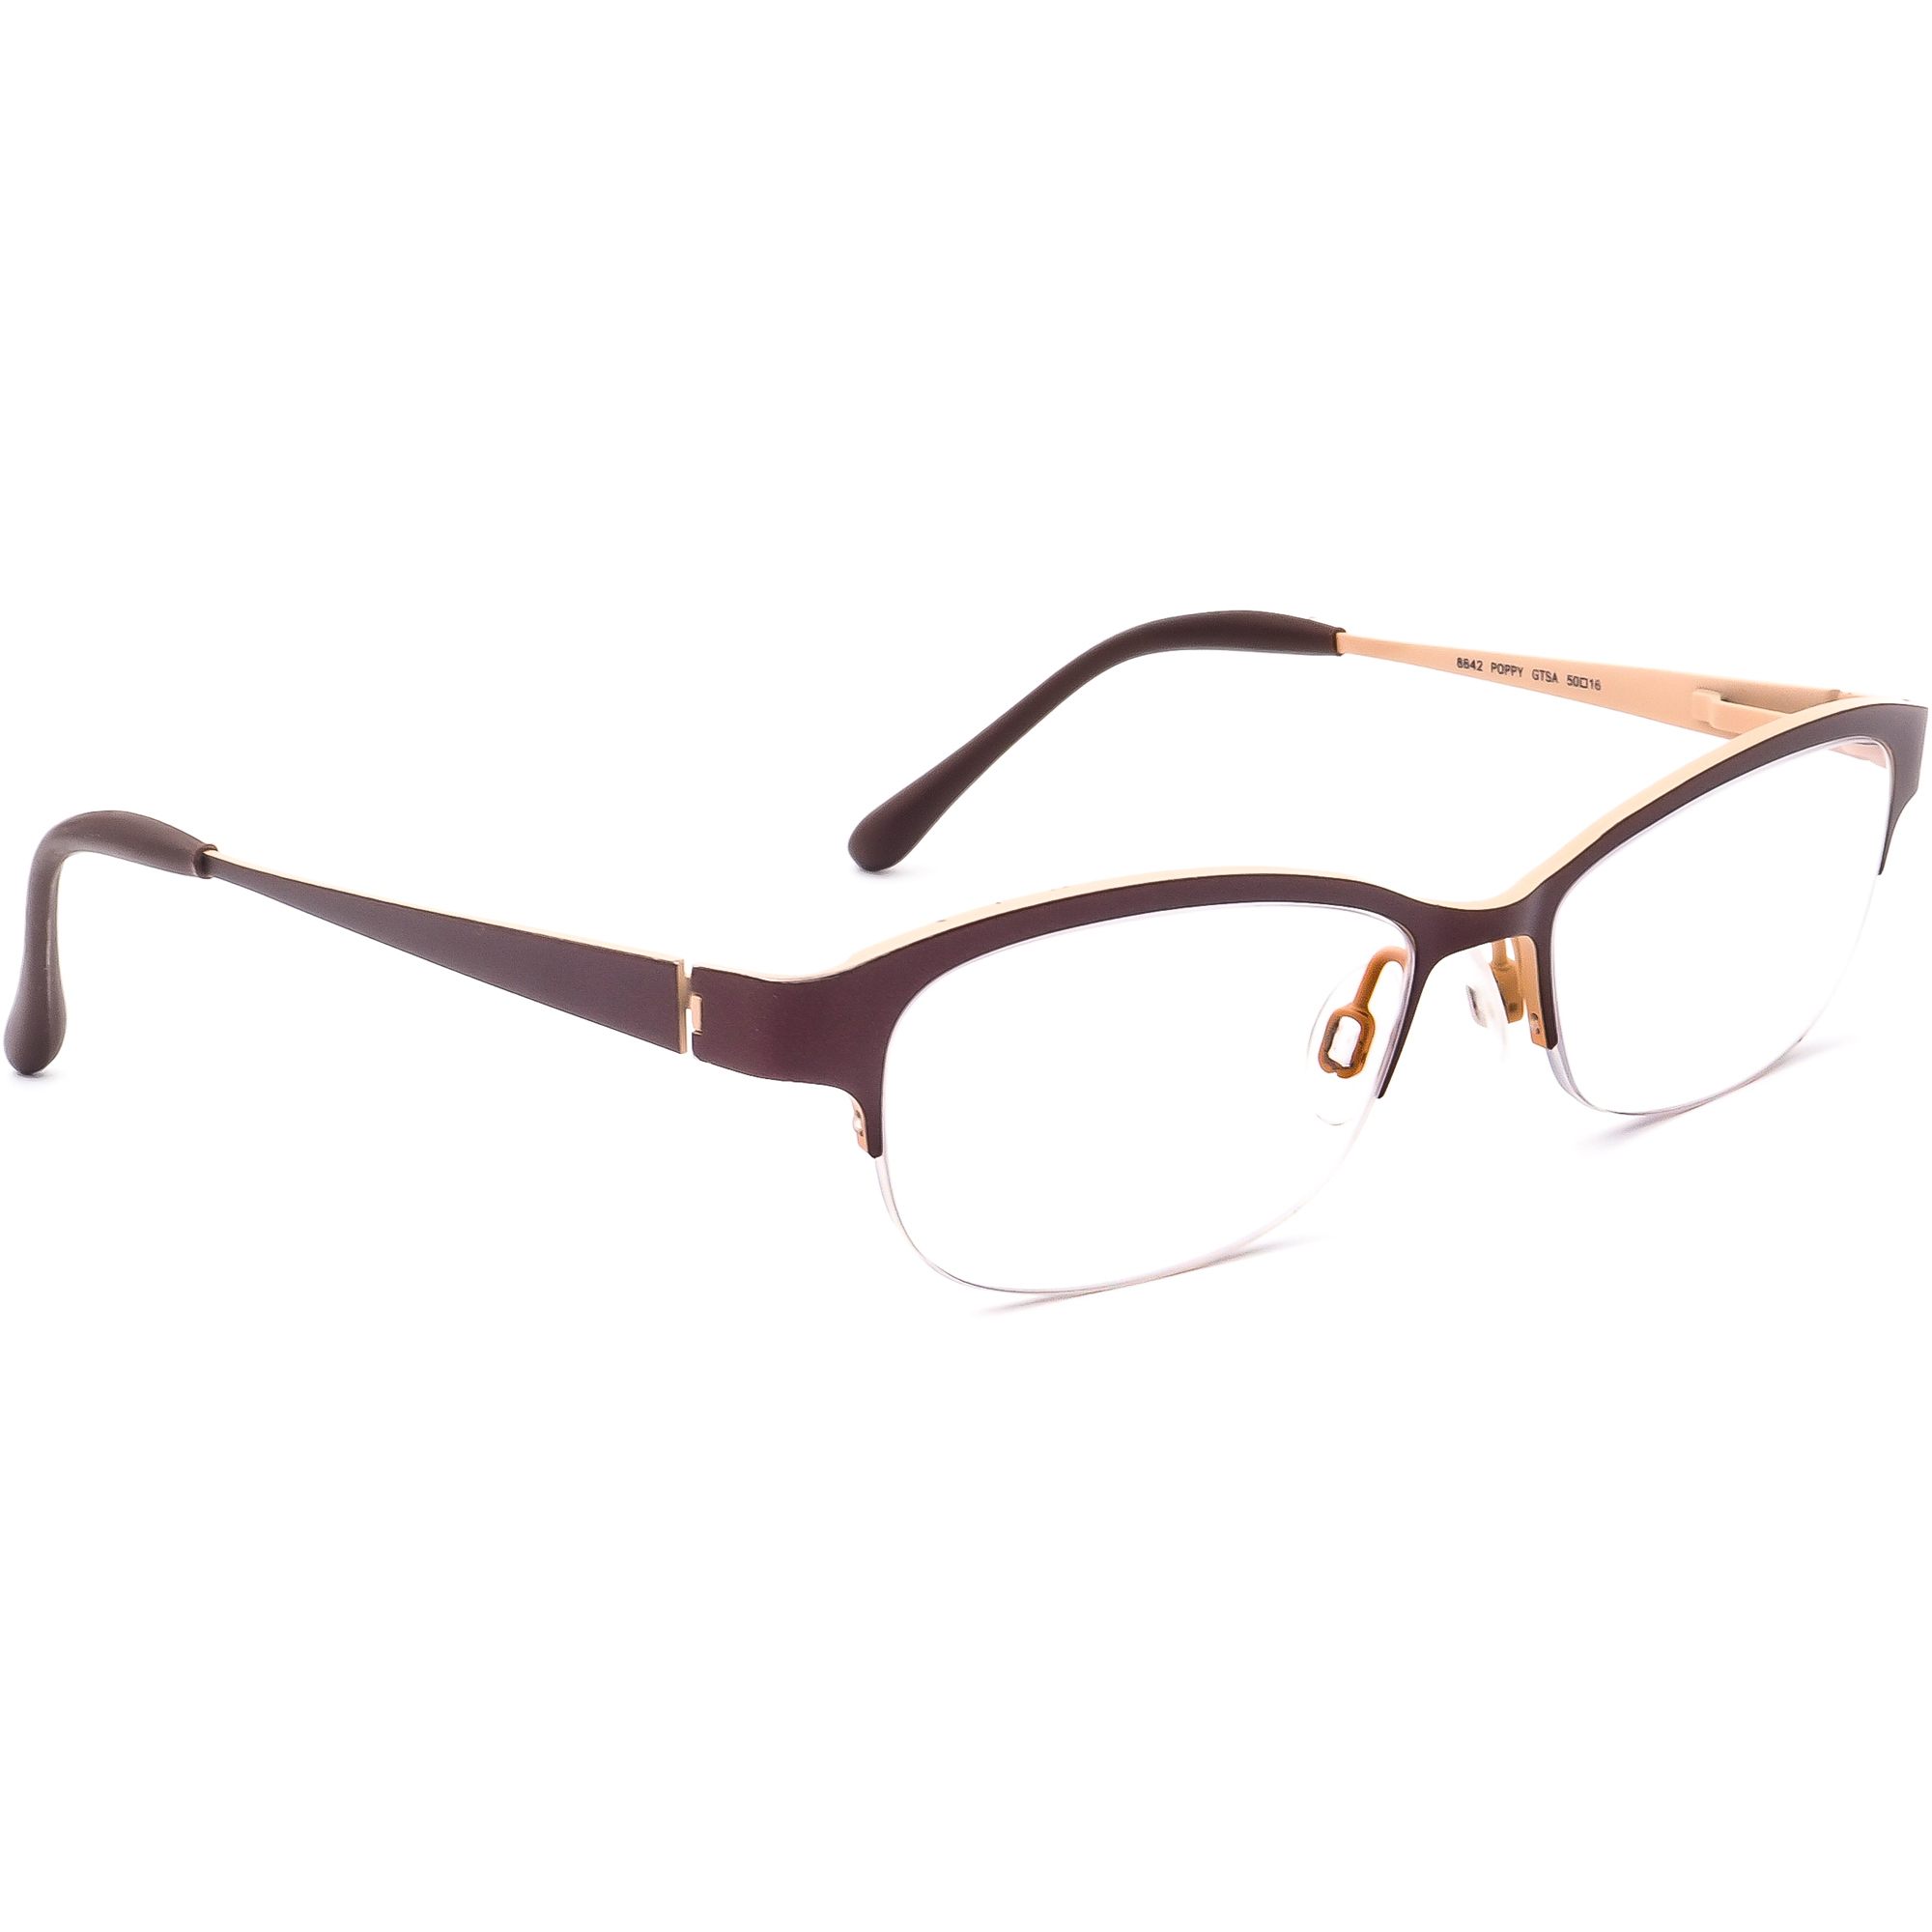 Bevel 8642 Poppy GTSA Eyeglasses